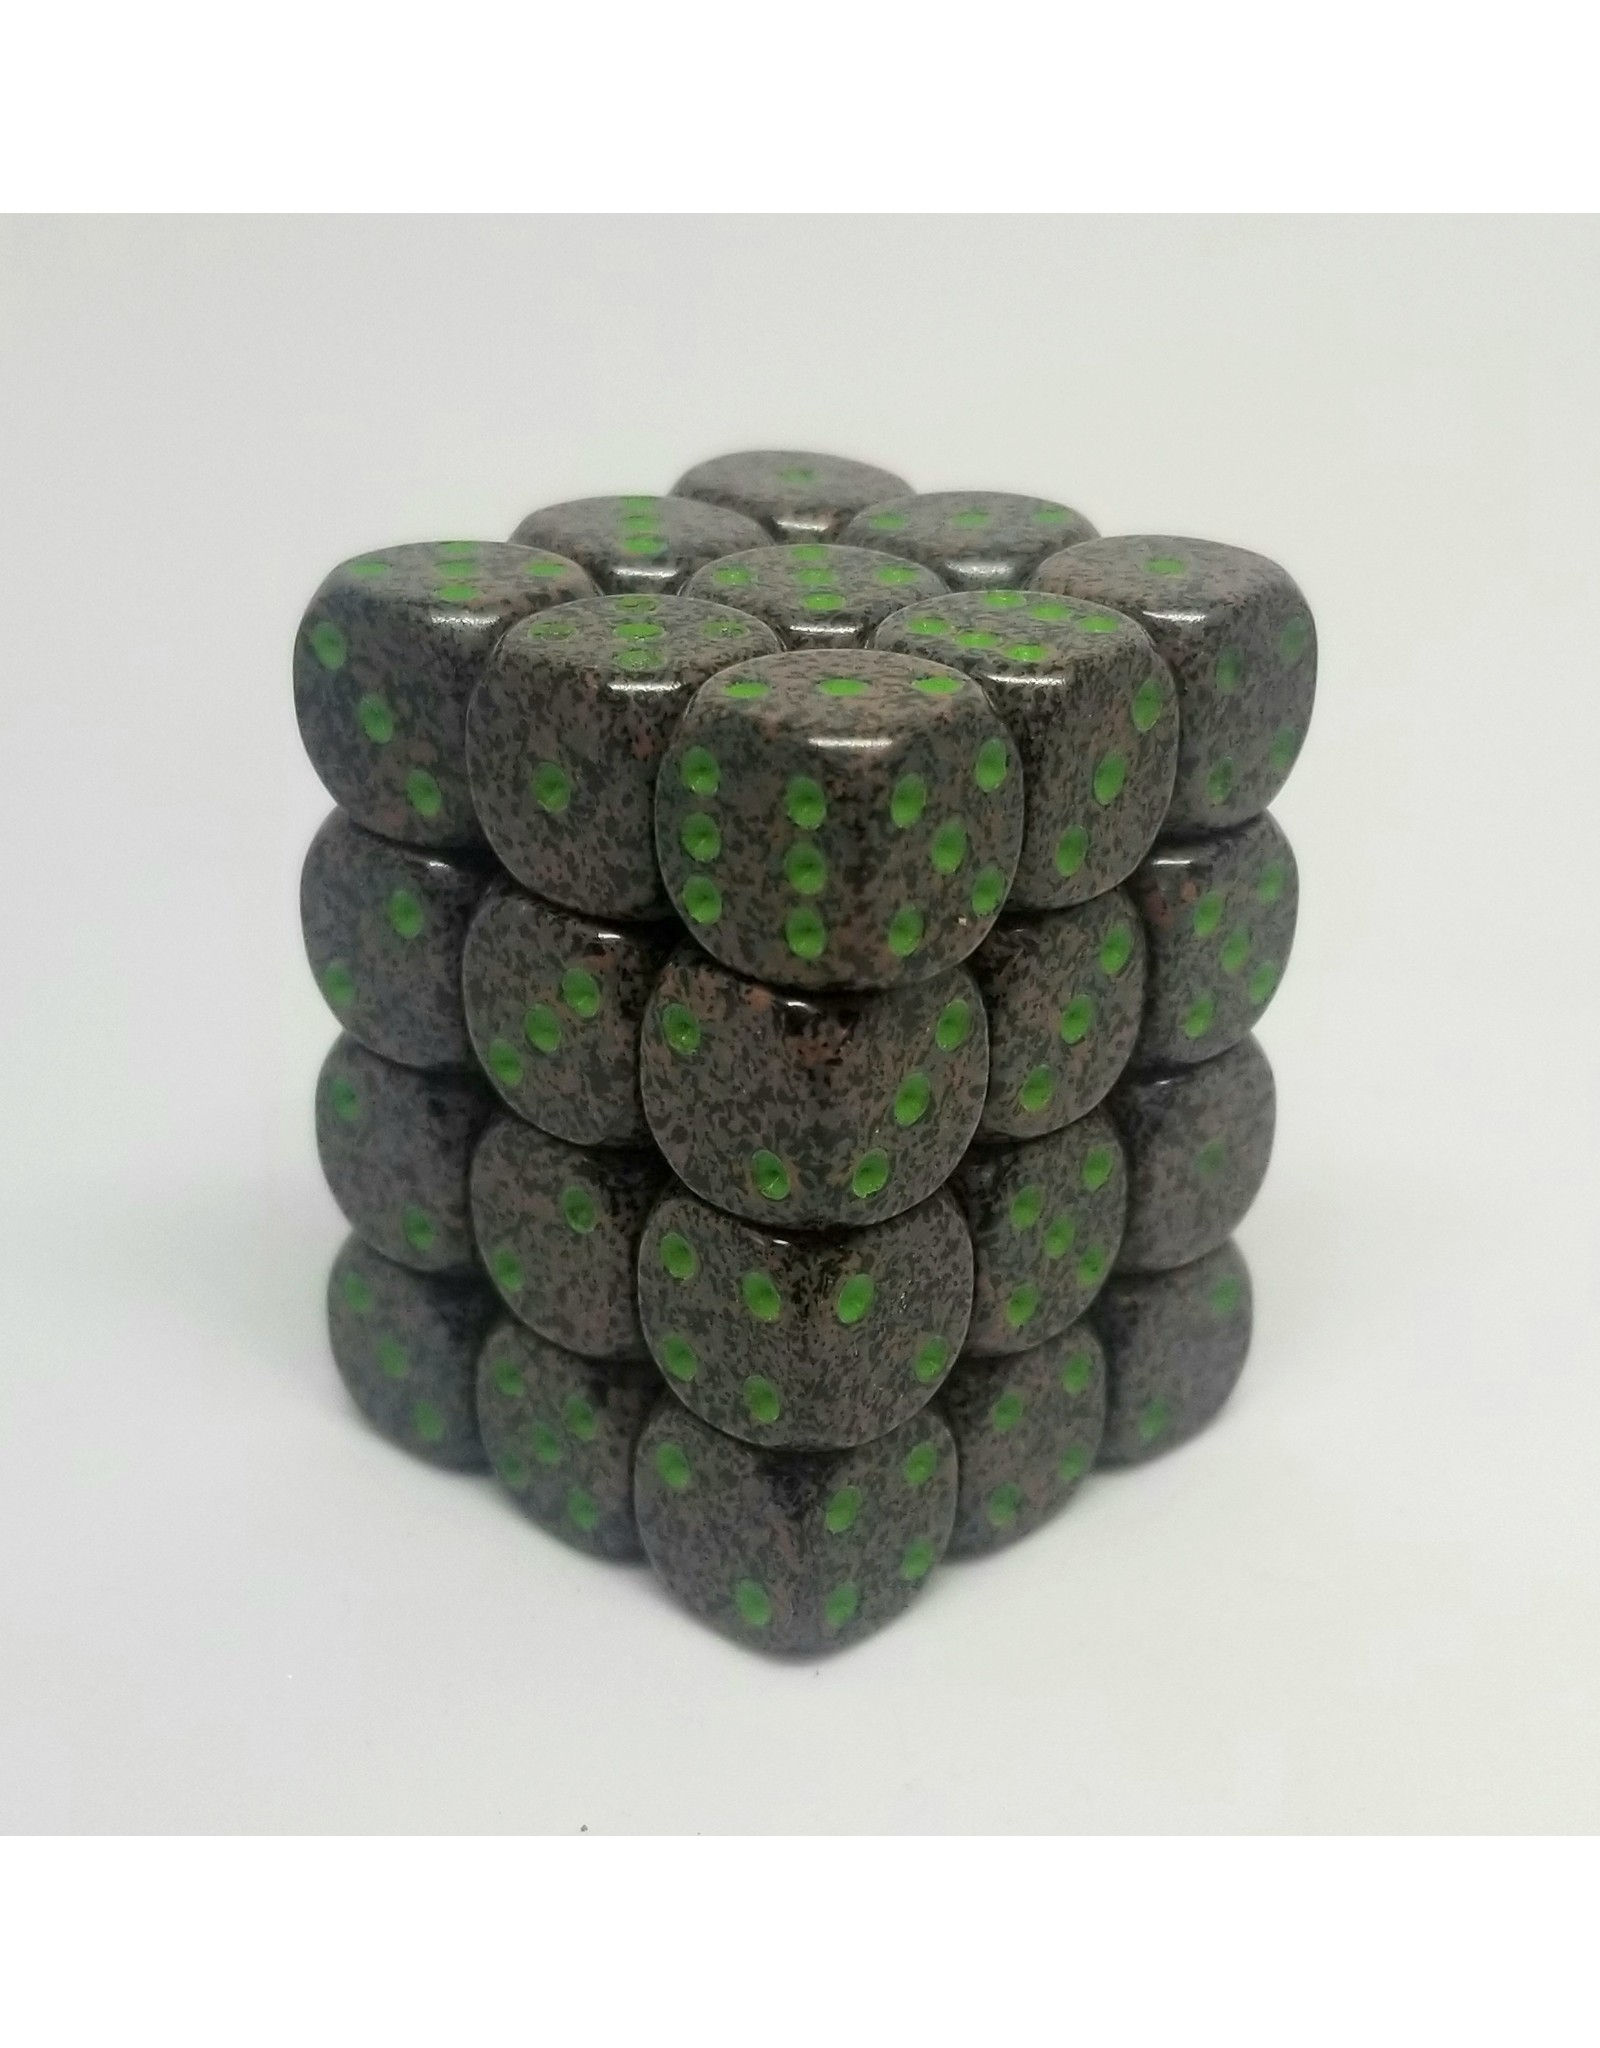 CHESSEX CHX 25910 12MM D6 DICE BLOCK SPECKLED EARTH